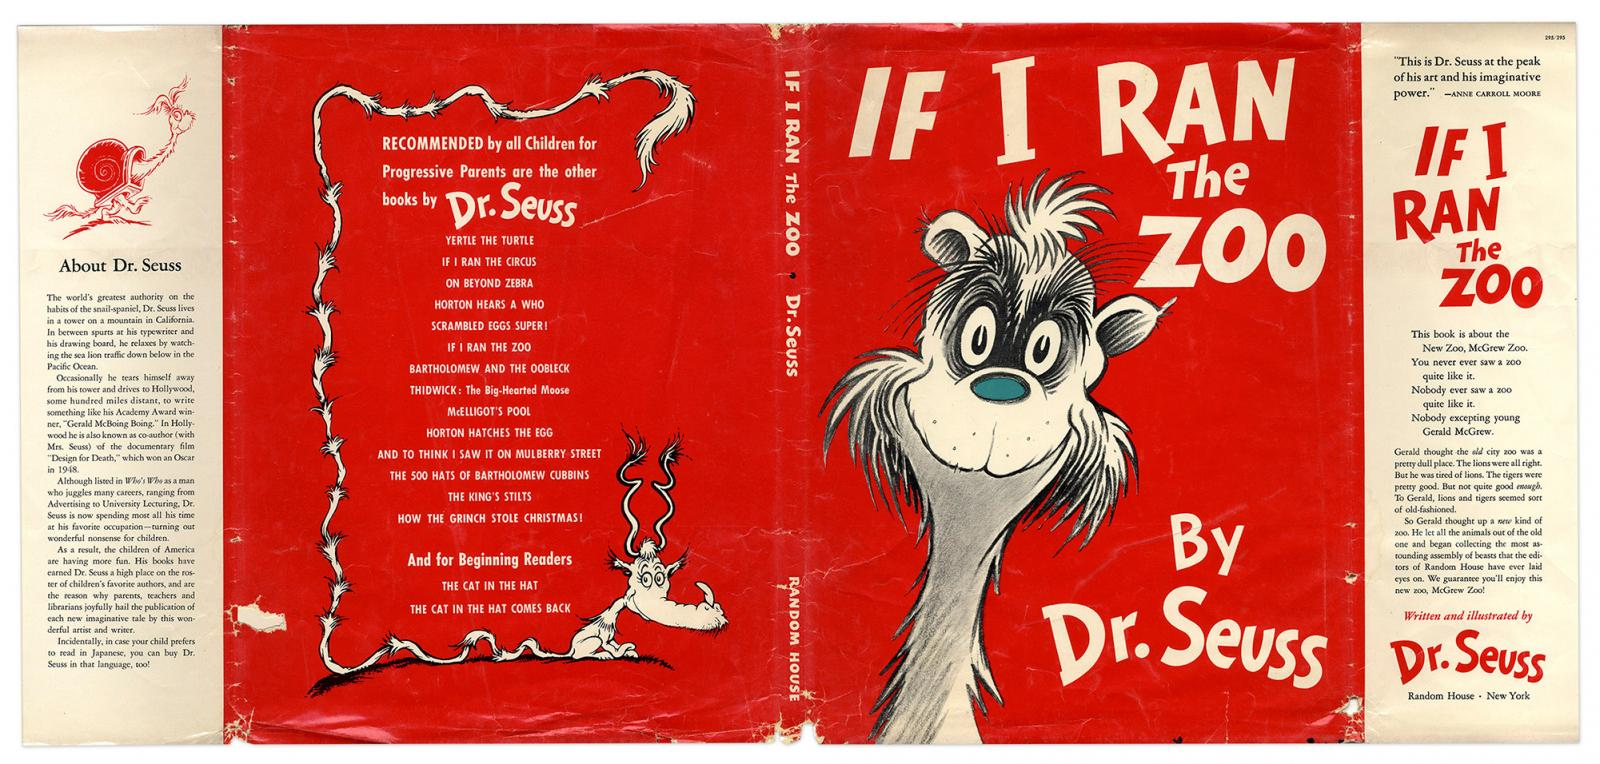 If I Ran the Zoo by Dr. Suess